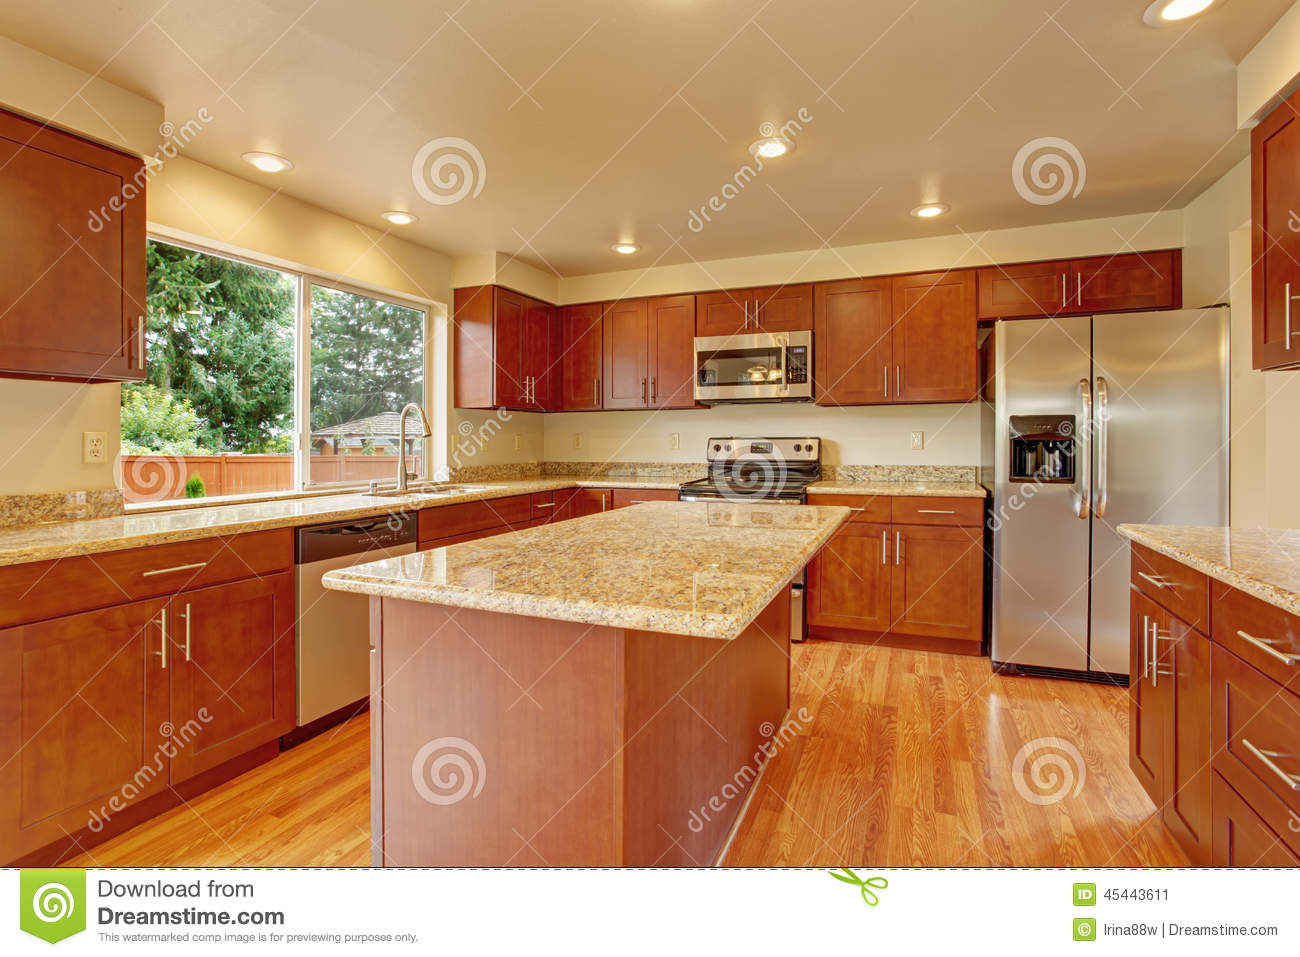 Kitchen furniture with island in empty house stock image for Mobilia kitchen